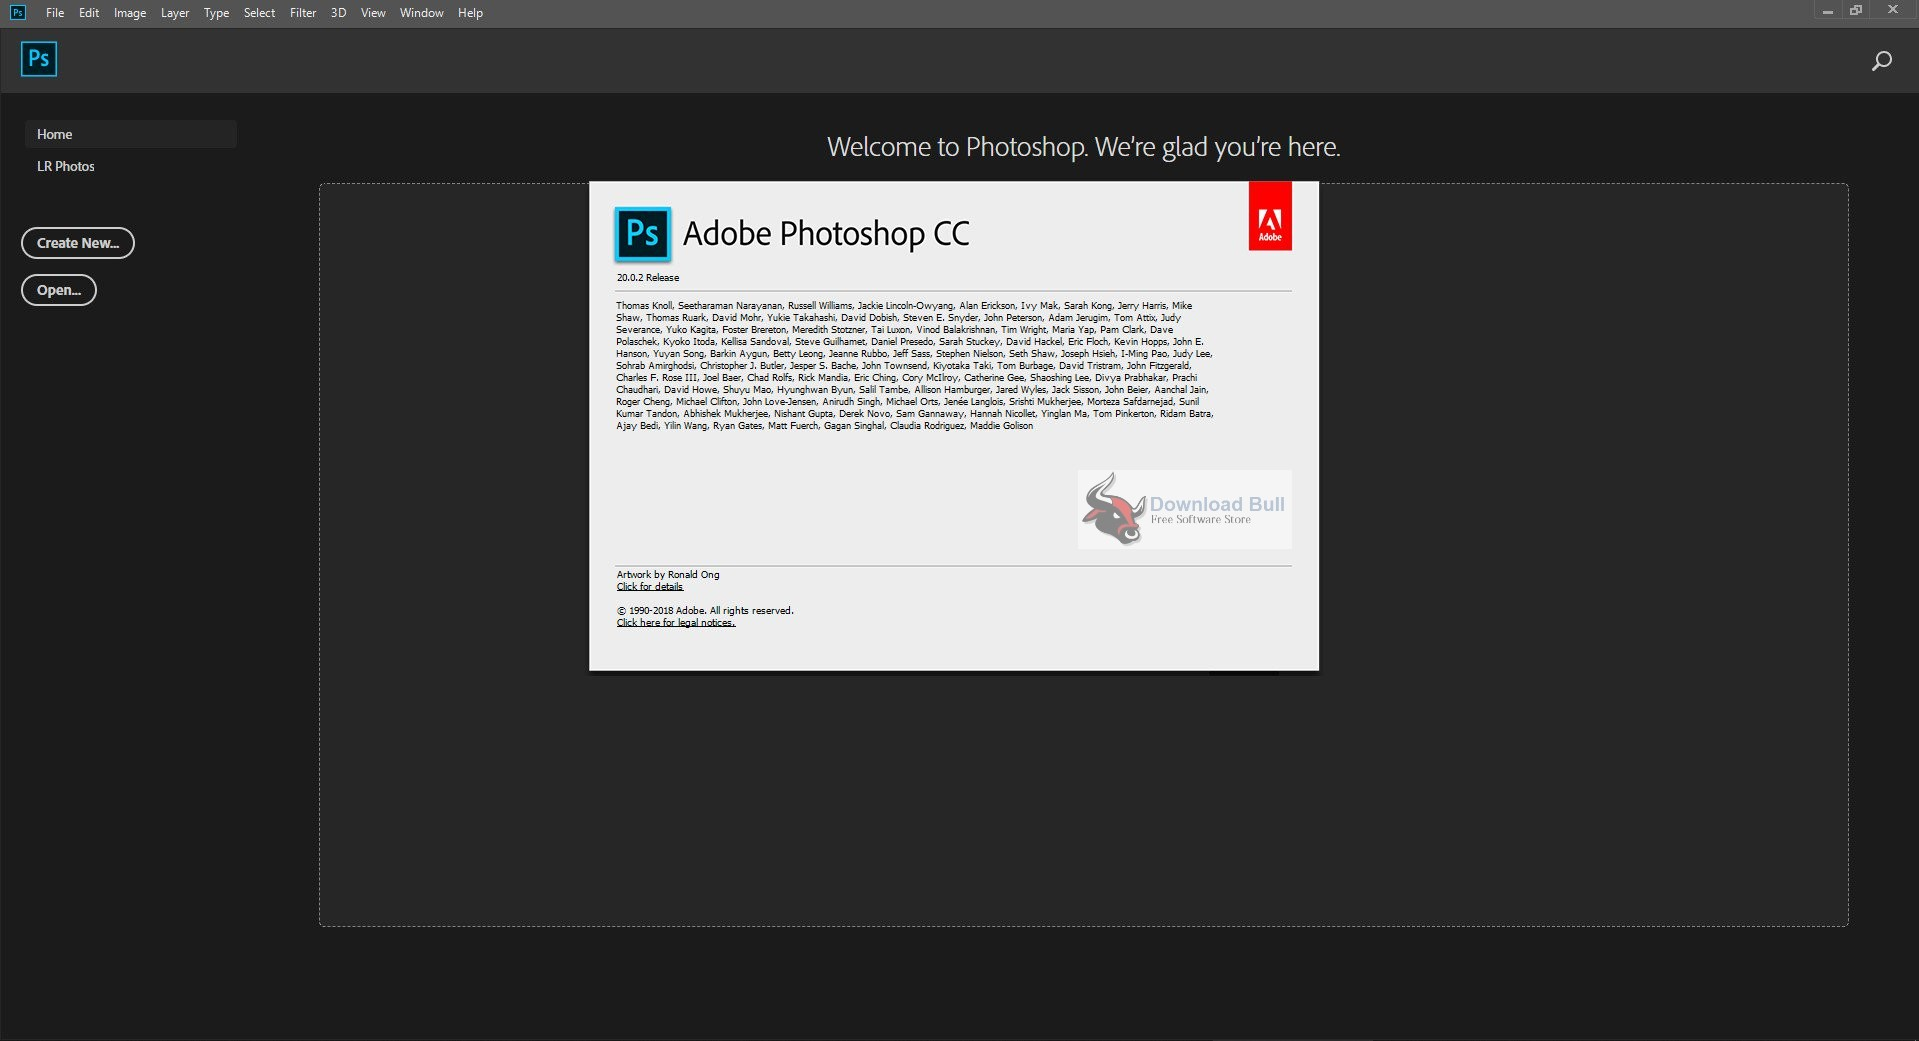 Portable Adobe Photoshop CC 2019 v20.0.6 Download